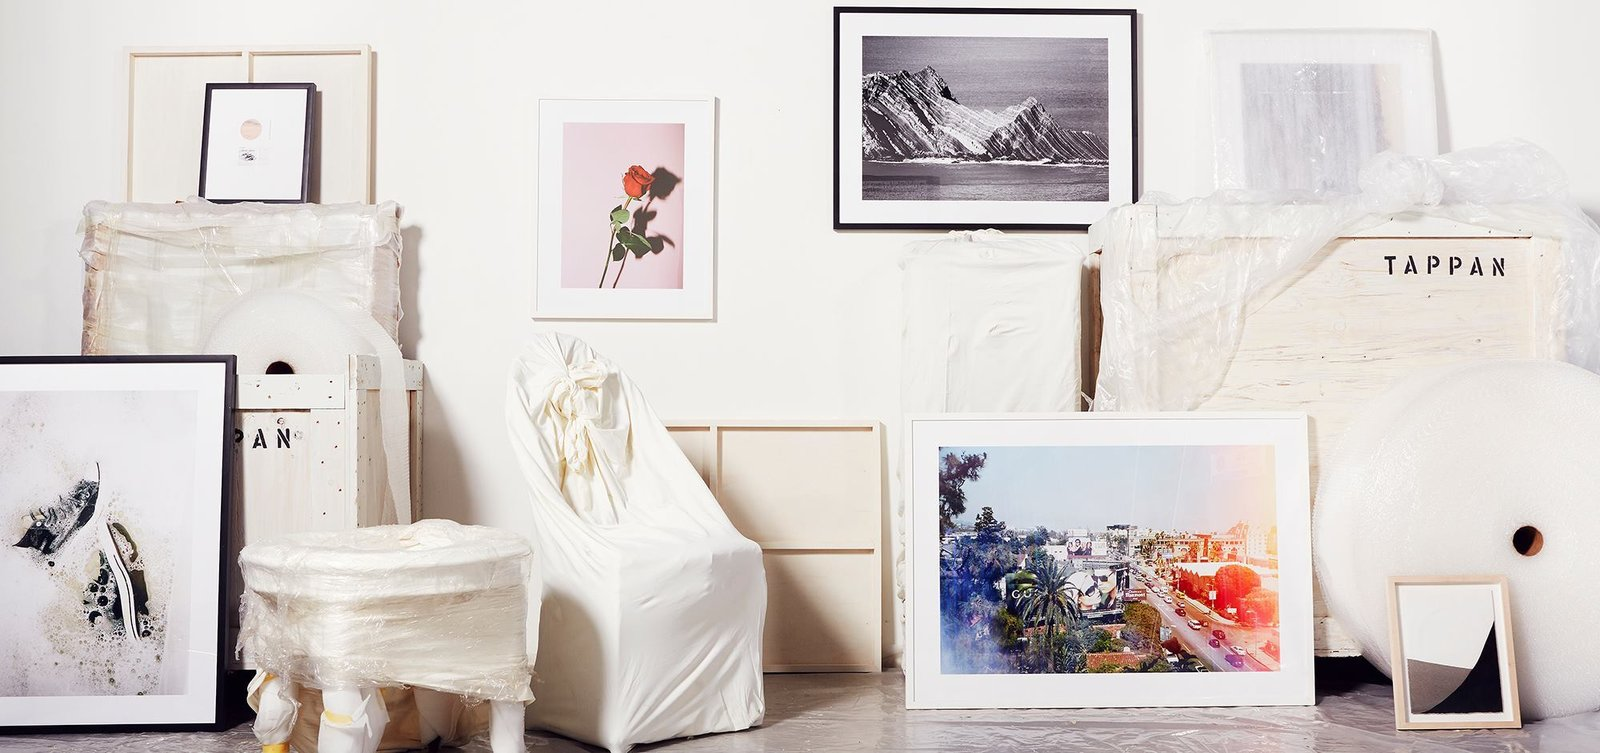 How Does Wall Art Enhance The Personality Of A Place